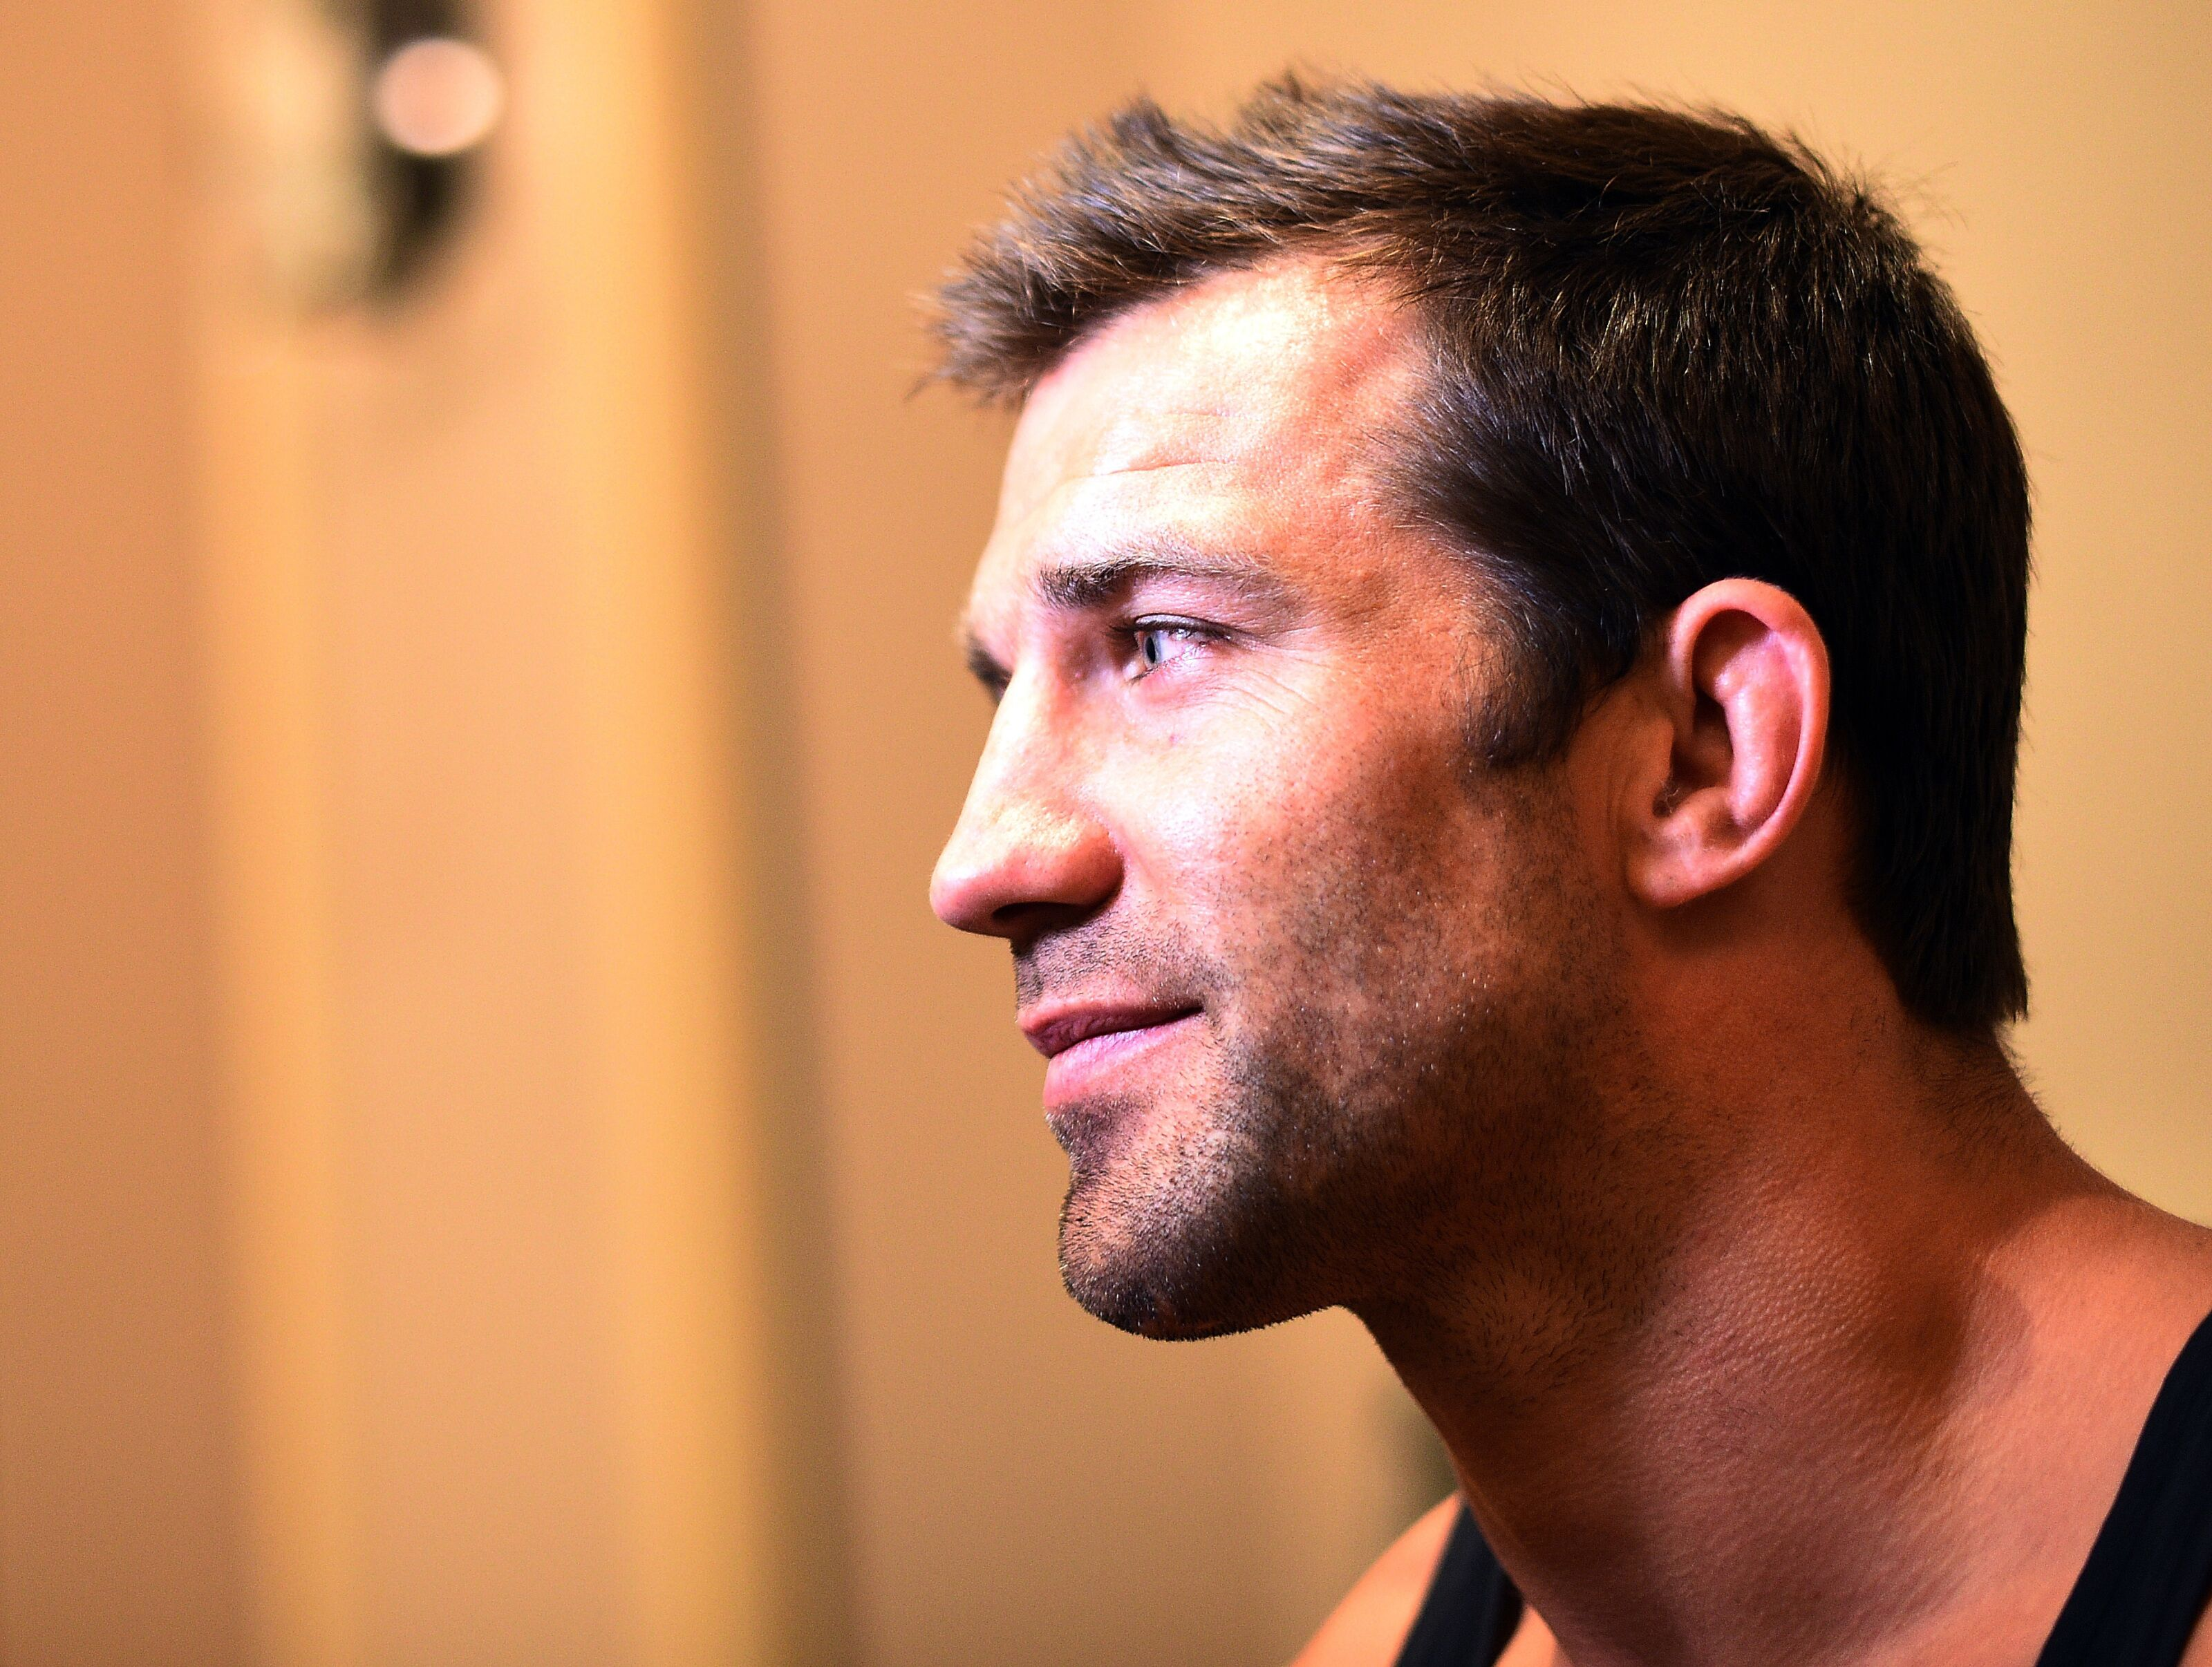 Luke Rockhold looks beyond MMA for a new opportunity